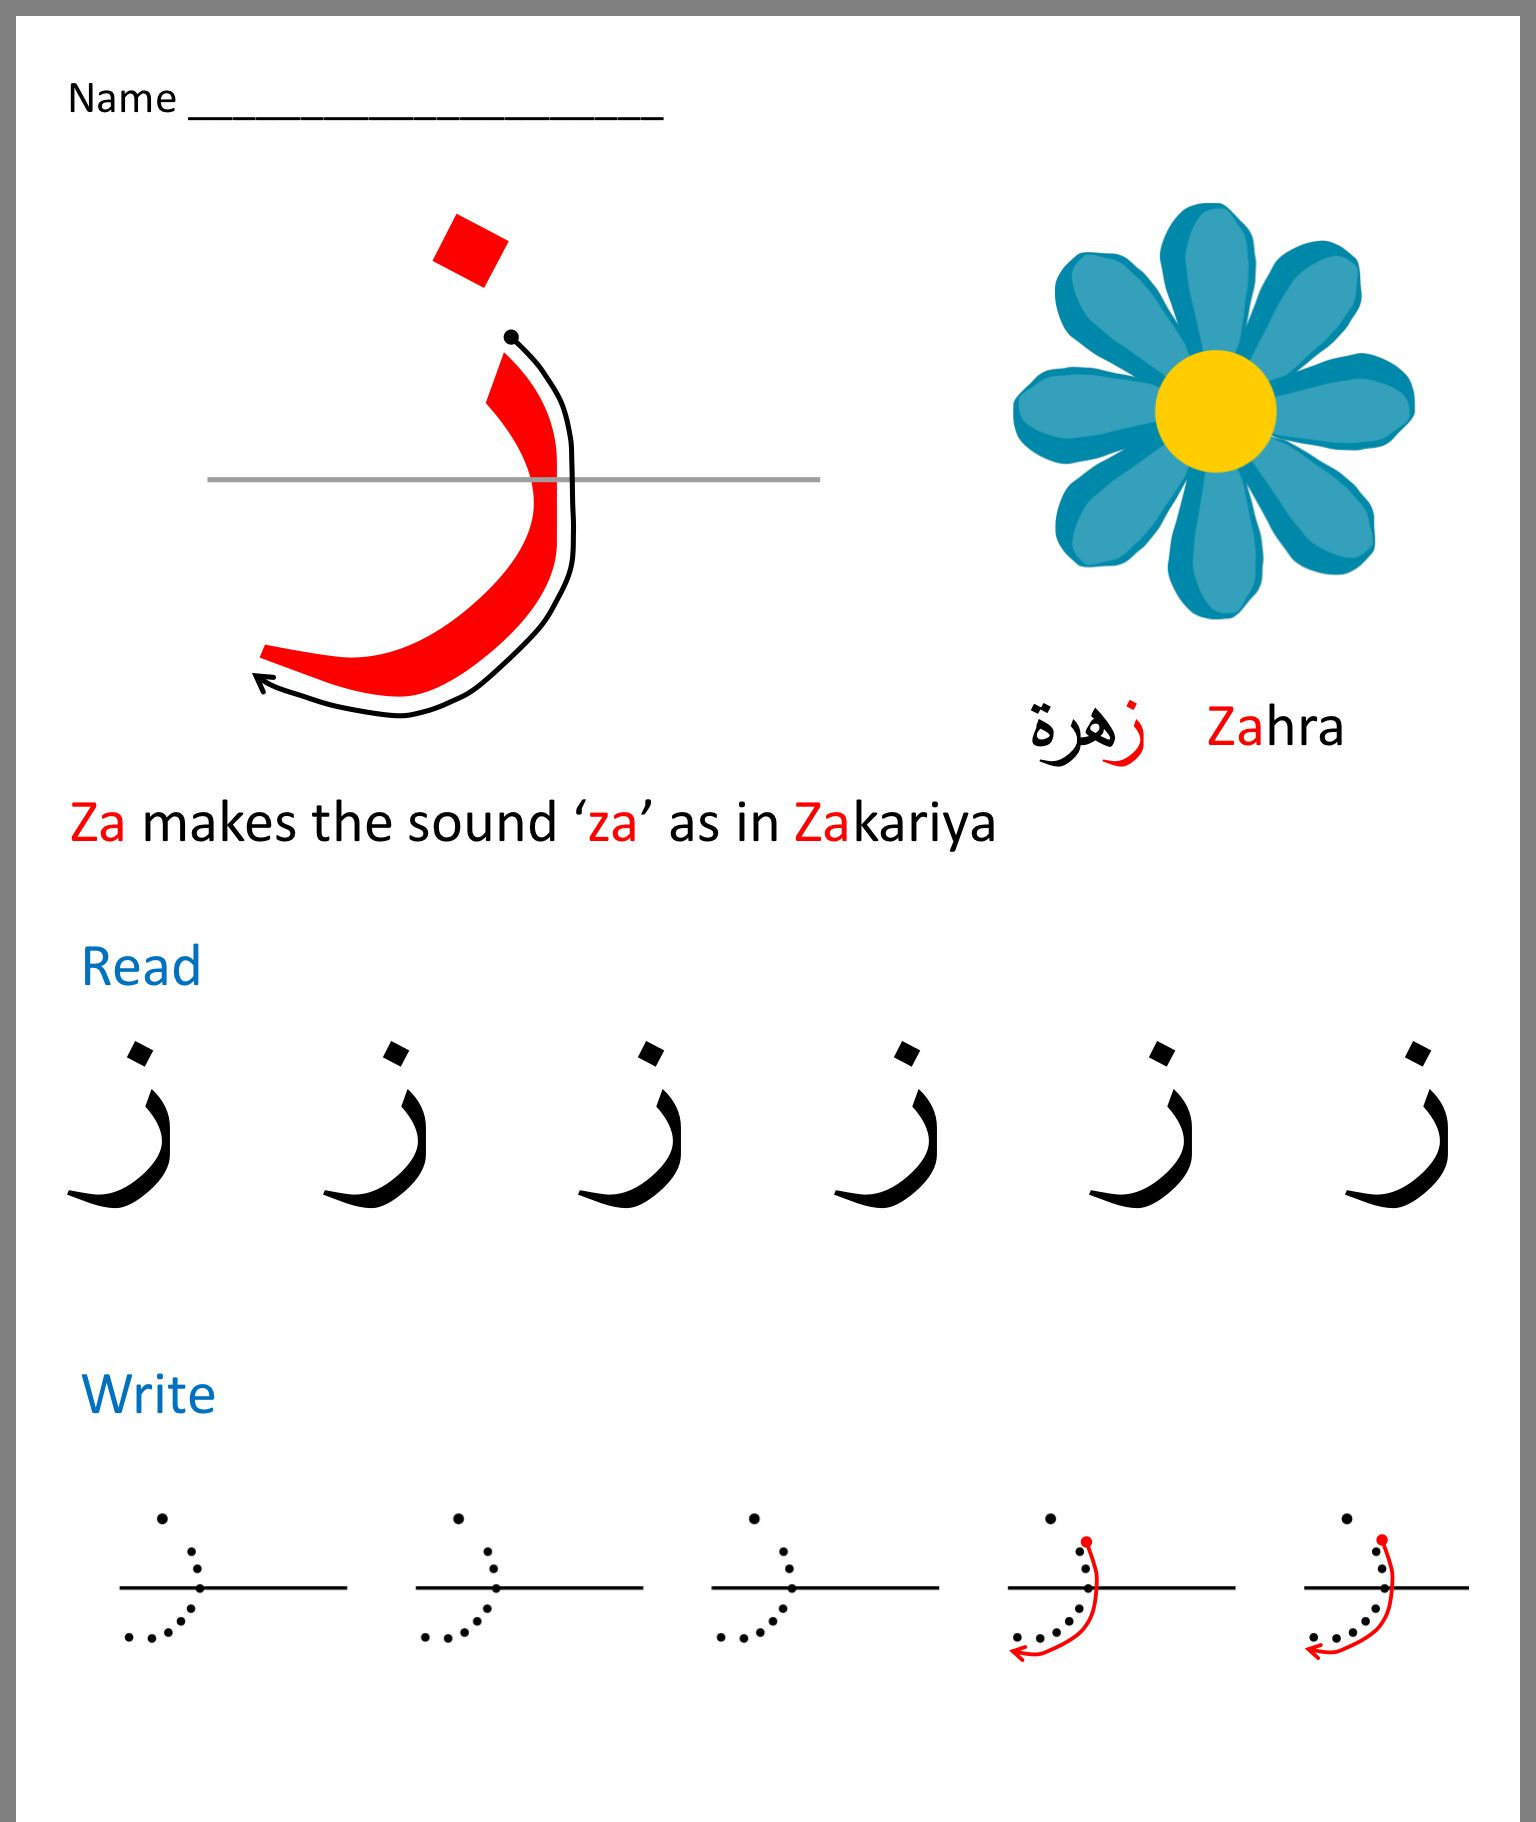 Pin By Marilyn Lane On Arabic Learn Arabic Alphabet Letter Recognition Worksheets Arabic Alphabet For Kids [ 1822 x 1536 Pixel ]